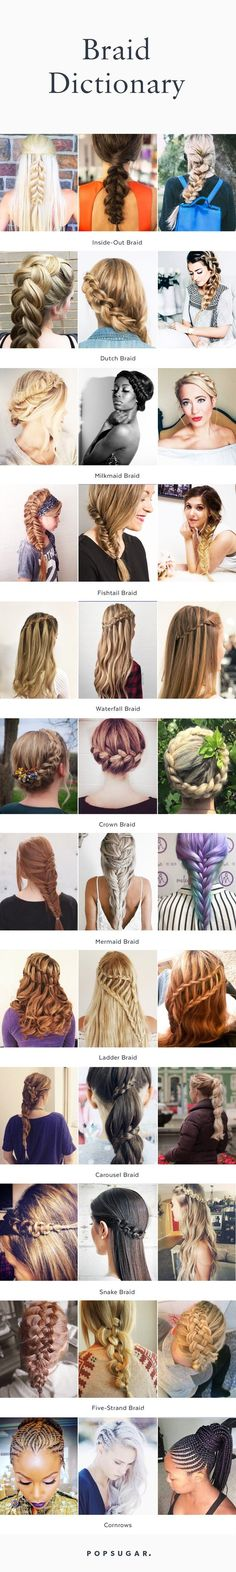 The guide for the perfect braid (or braids) for back to school.